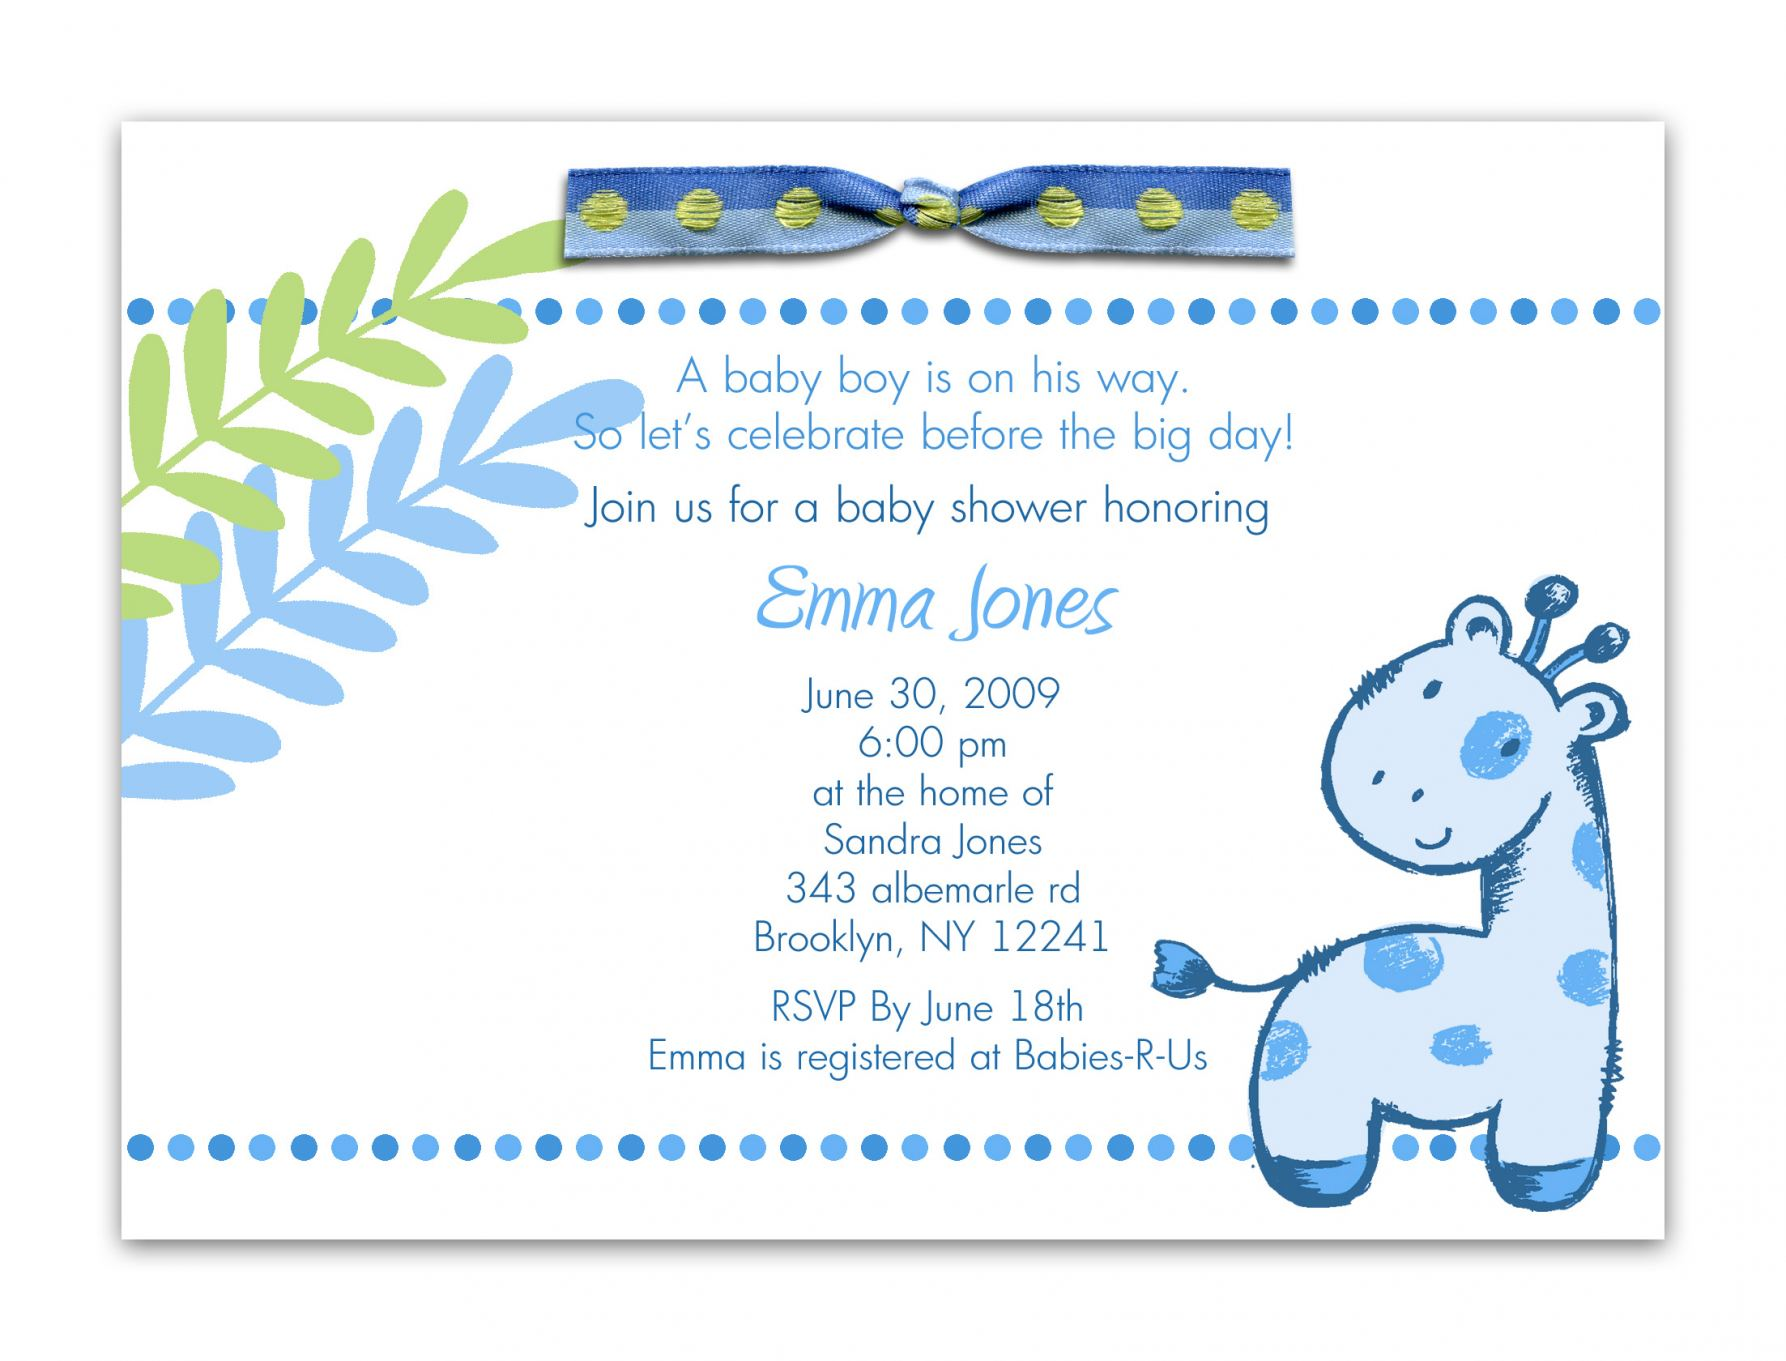 Full Size of Baby Shower:36+ Retro Baby Shower Thank You Wording Image Concepts Baby Shower Thank You Wording Photo 7 Of 9 Baby Shower Thank You Poems From Baby Boy 8 Baby Shower Thank You Sayings